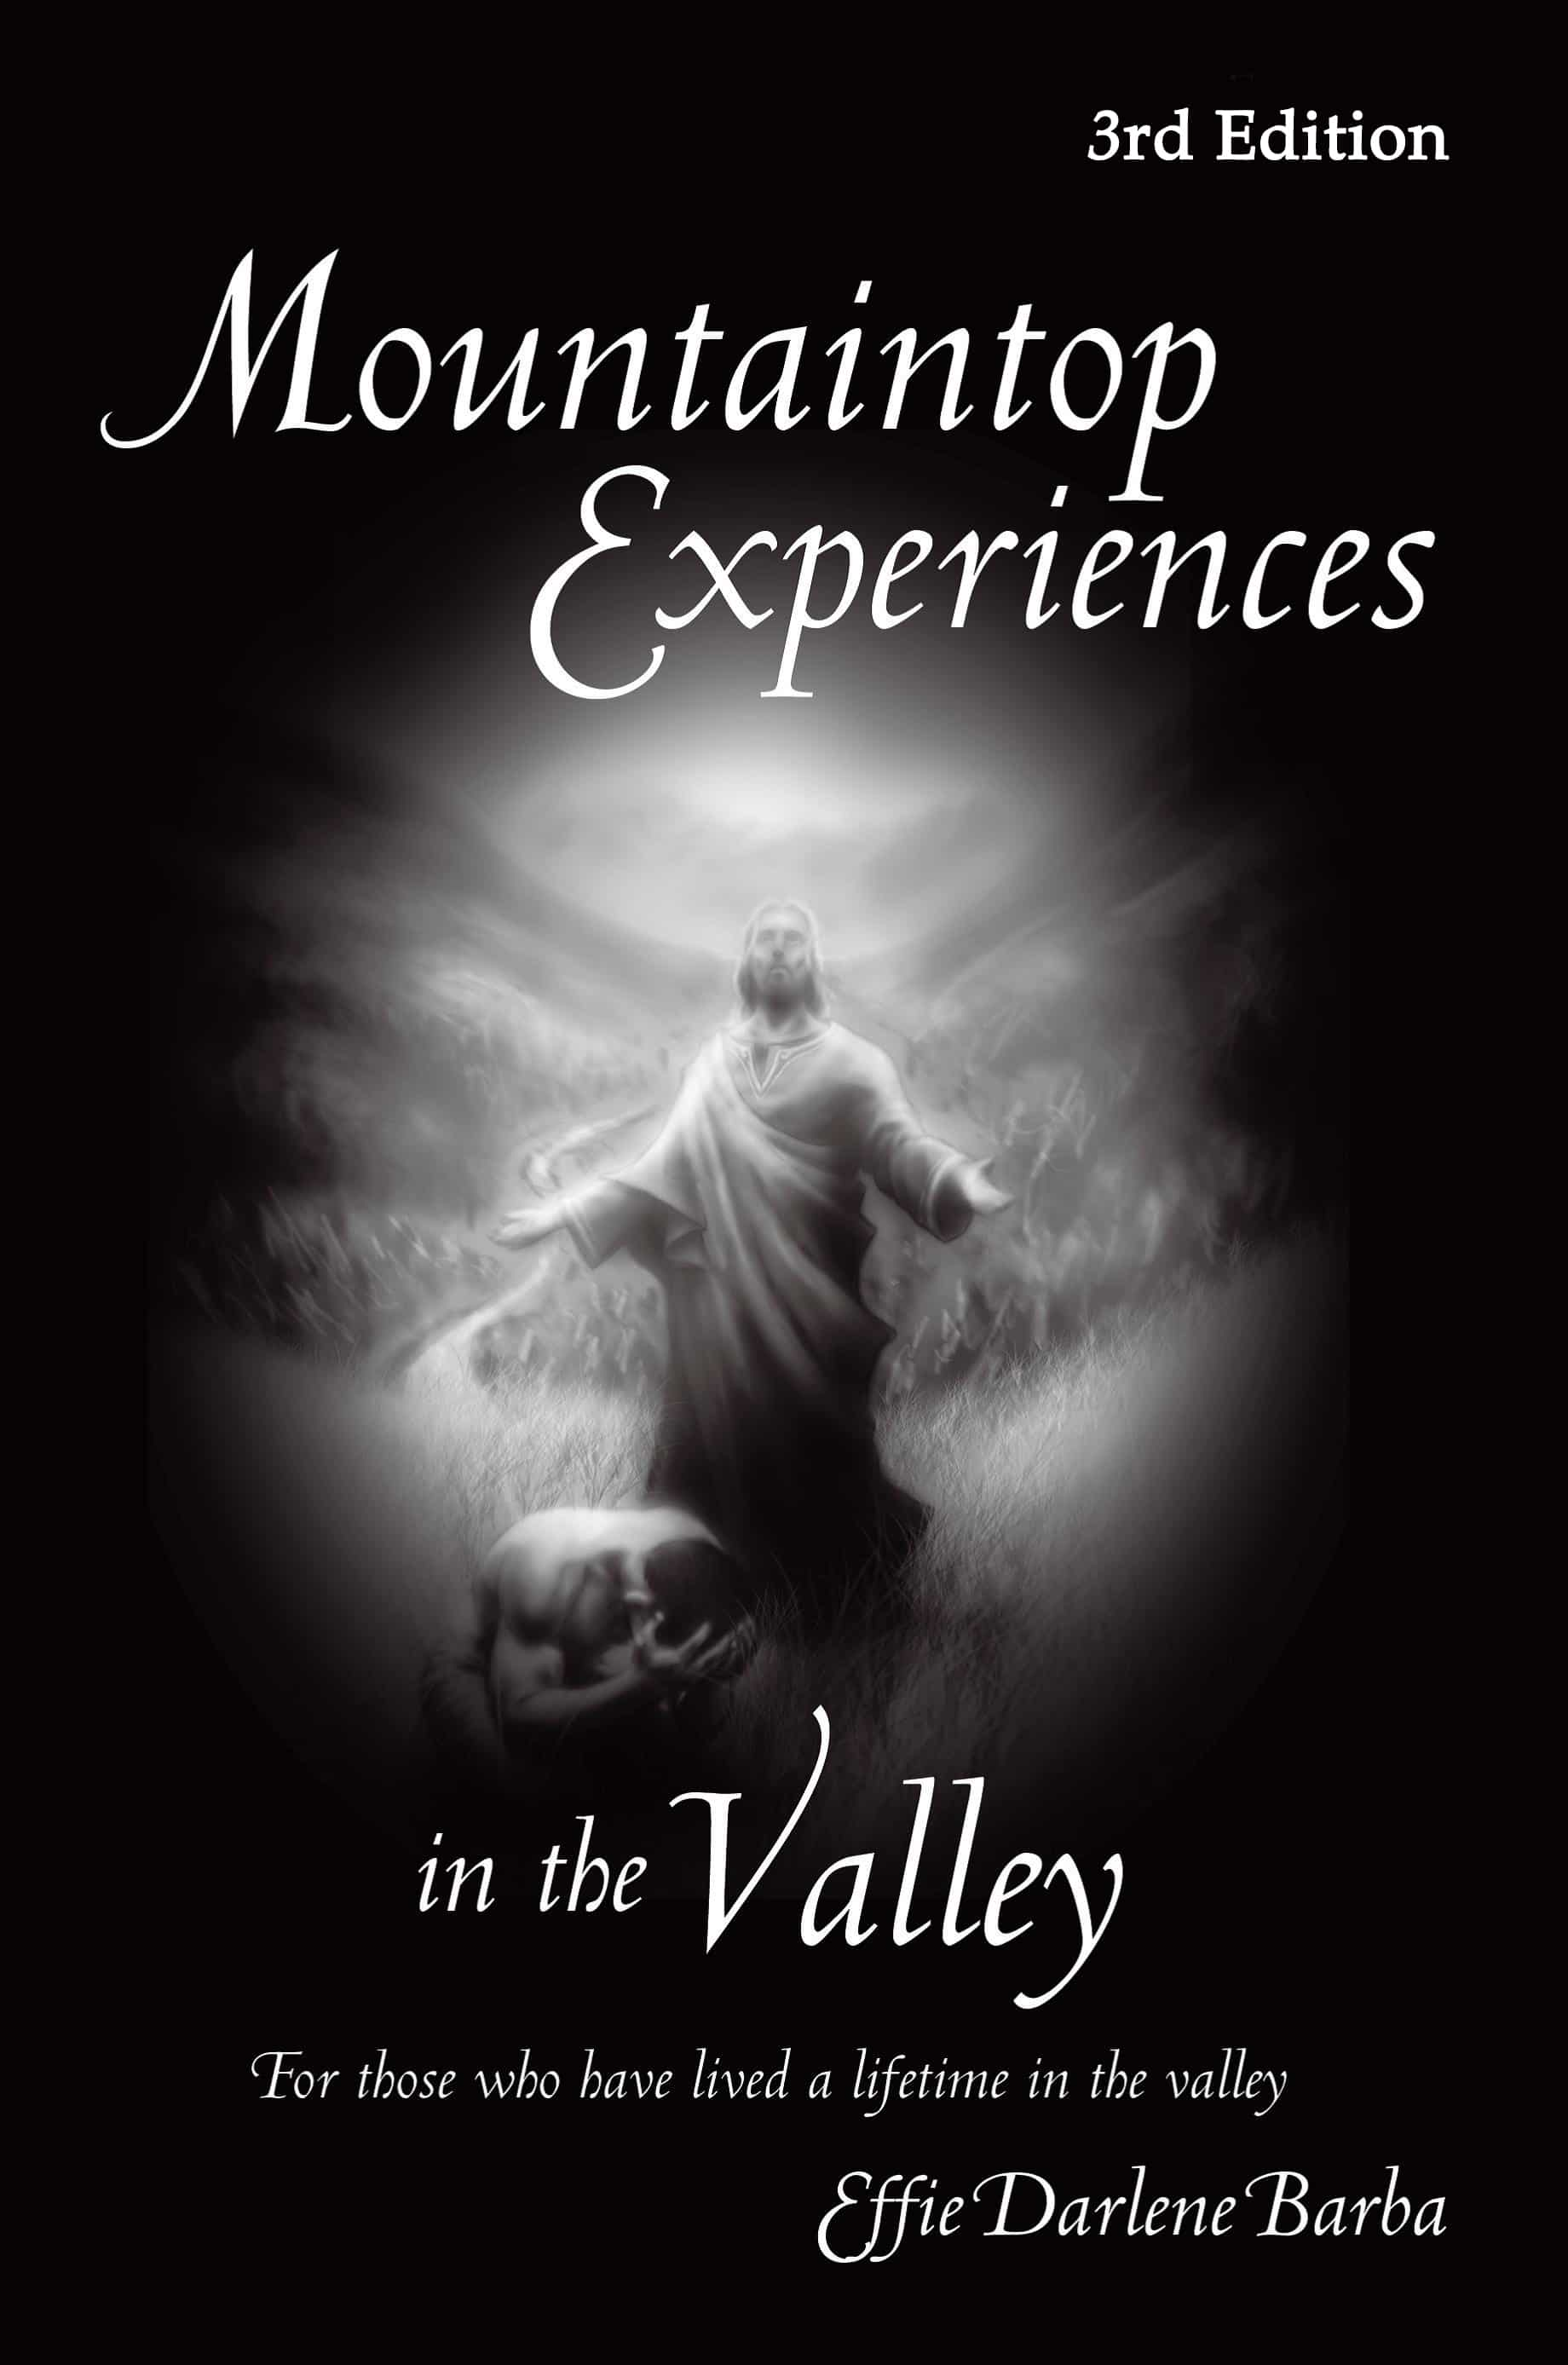 Free to All Who Subscribe Introduction and Chapter One of Mountaintop Experiences in the VAlley